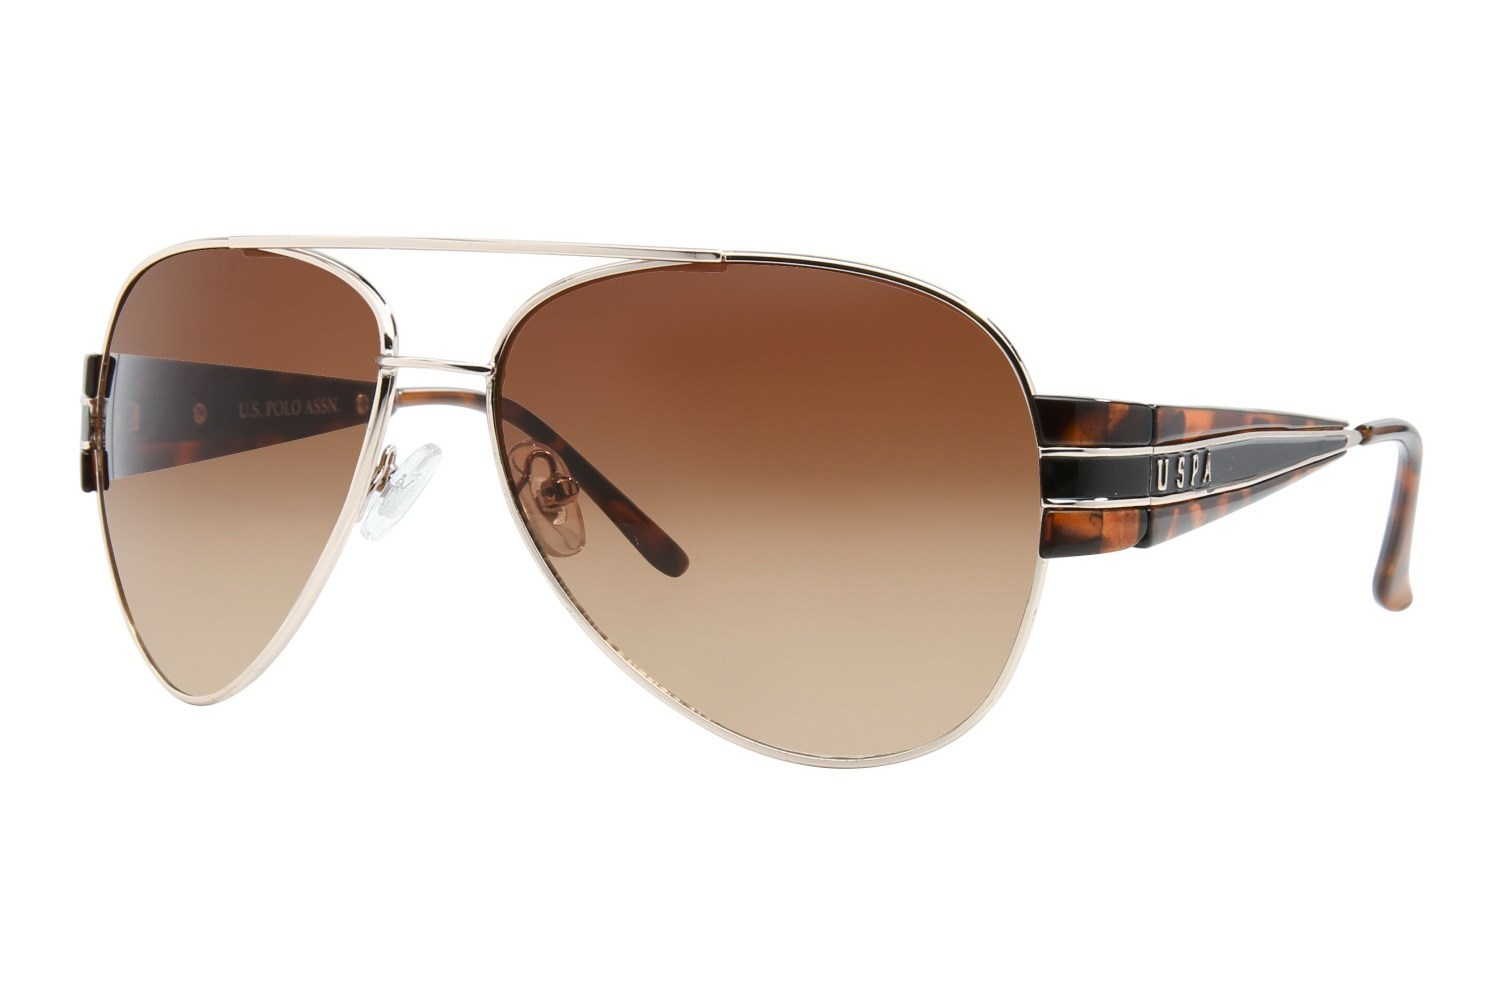 fcc104352dc6 Eyewear glasses and contact lenses superstore USPA Muscle Shoals Discount  Sunglasses